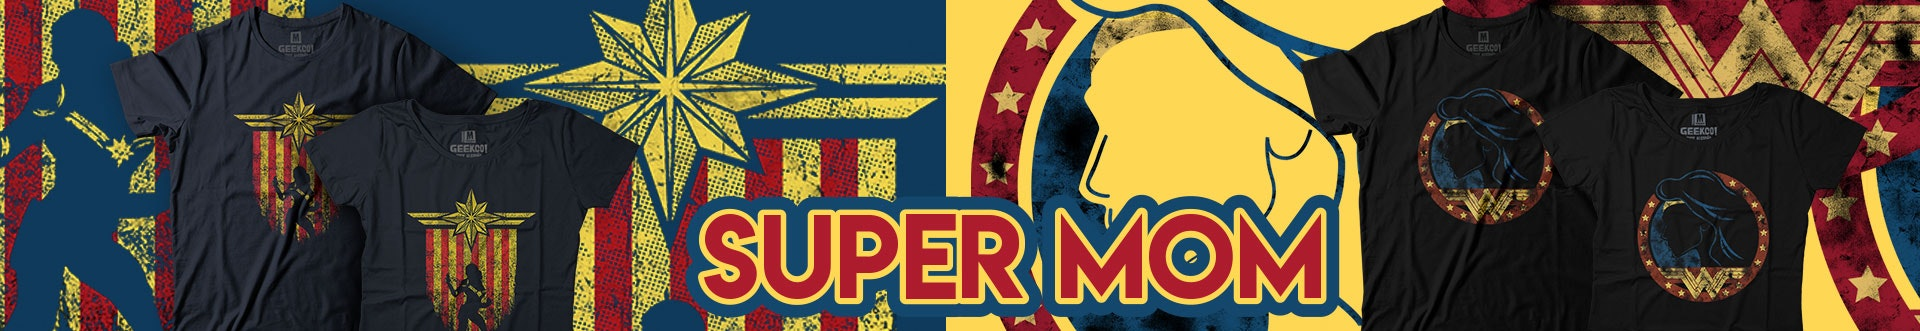 Banner Página Super Mom - Geek